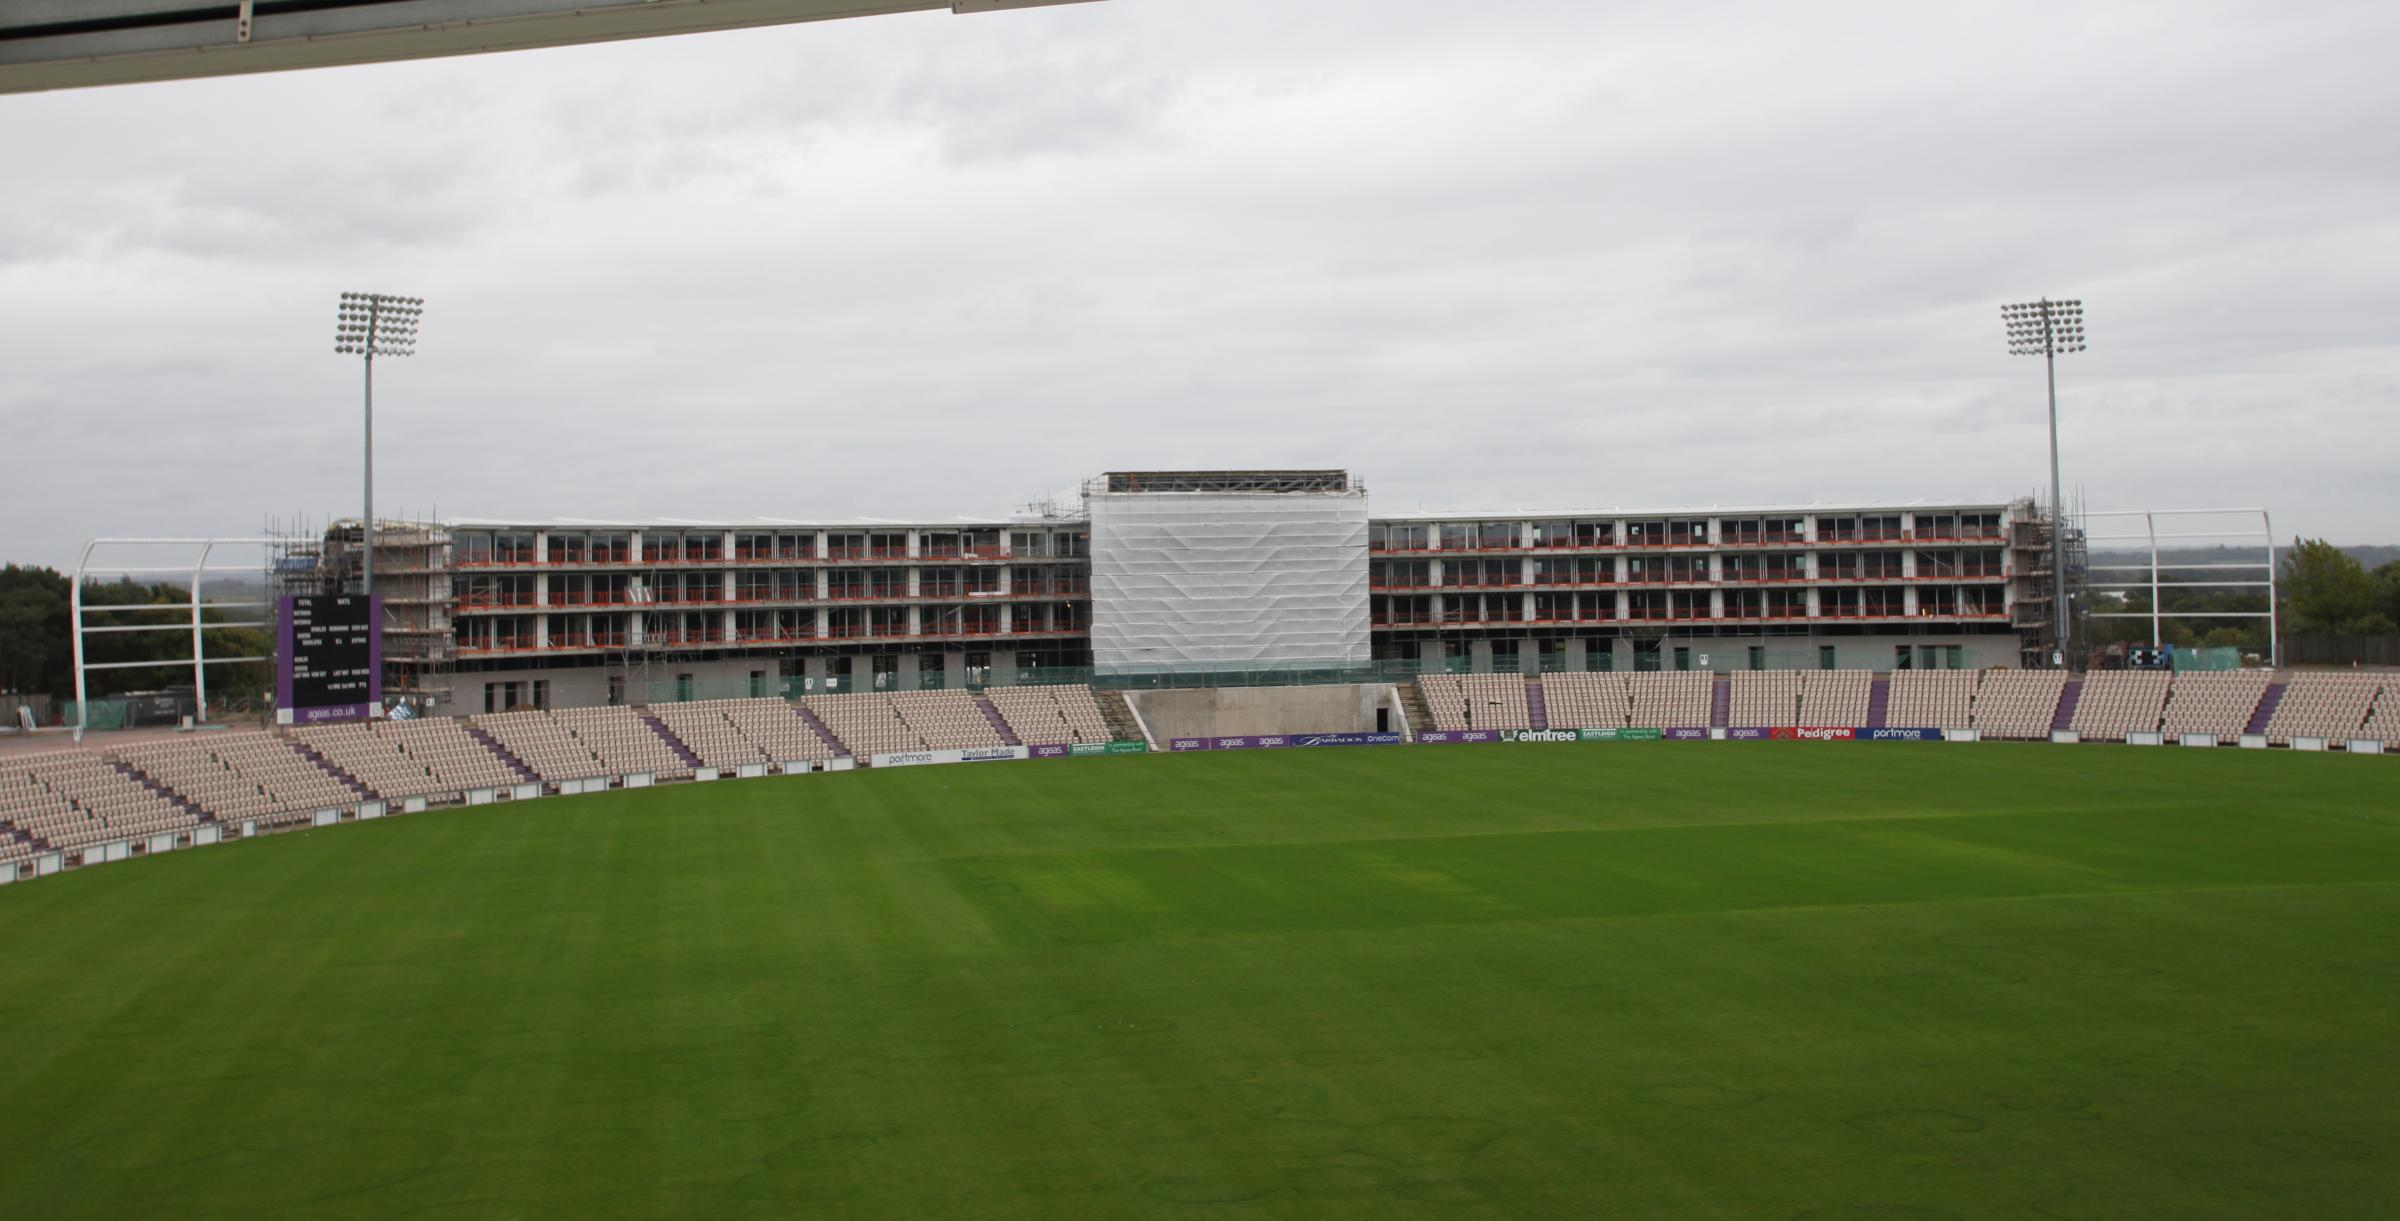 Predicted £2m loss forced builder of luxury Ageas Bowl hotel to go bust